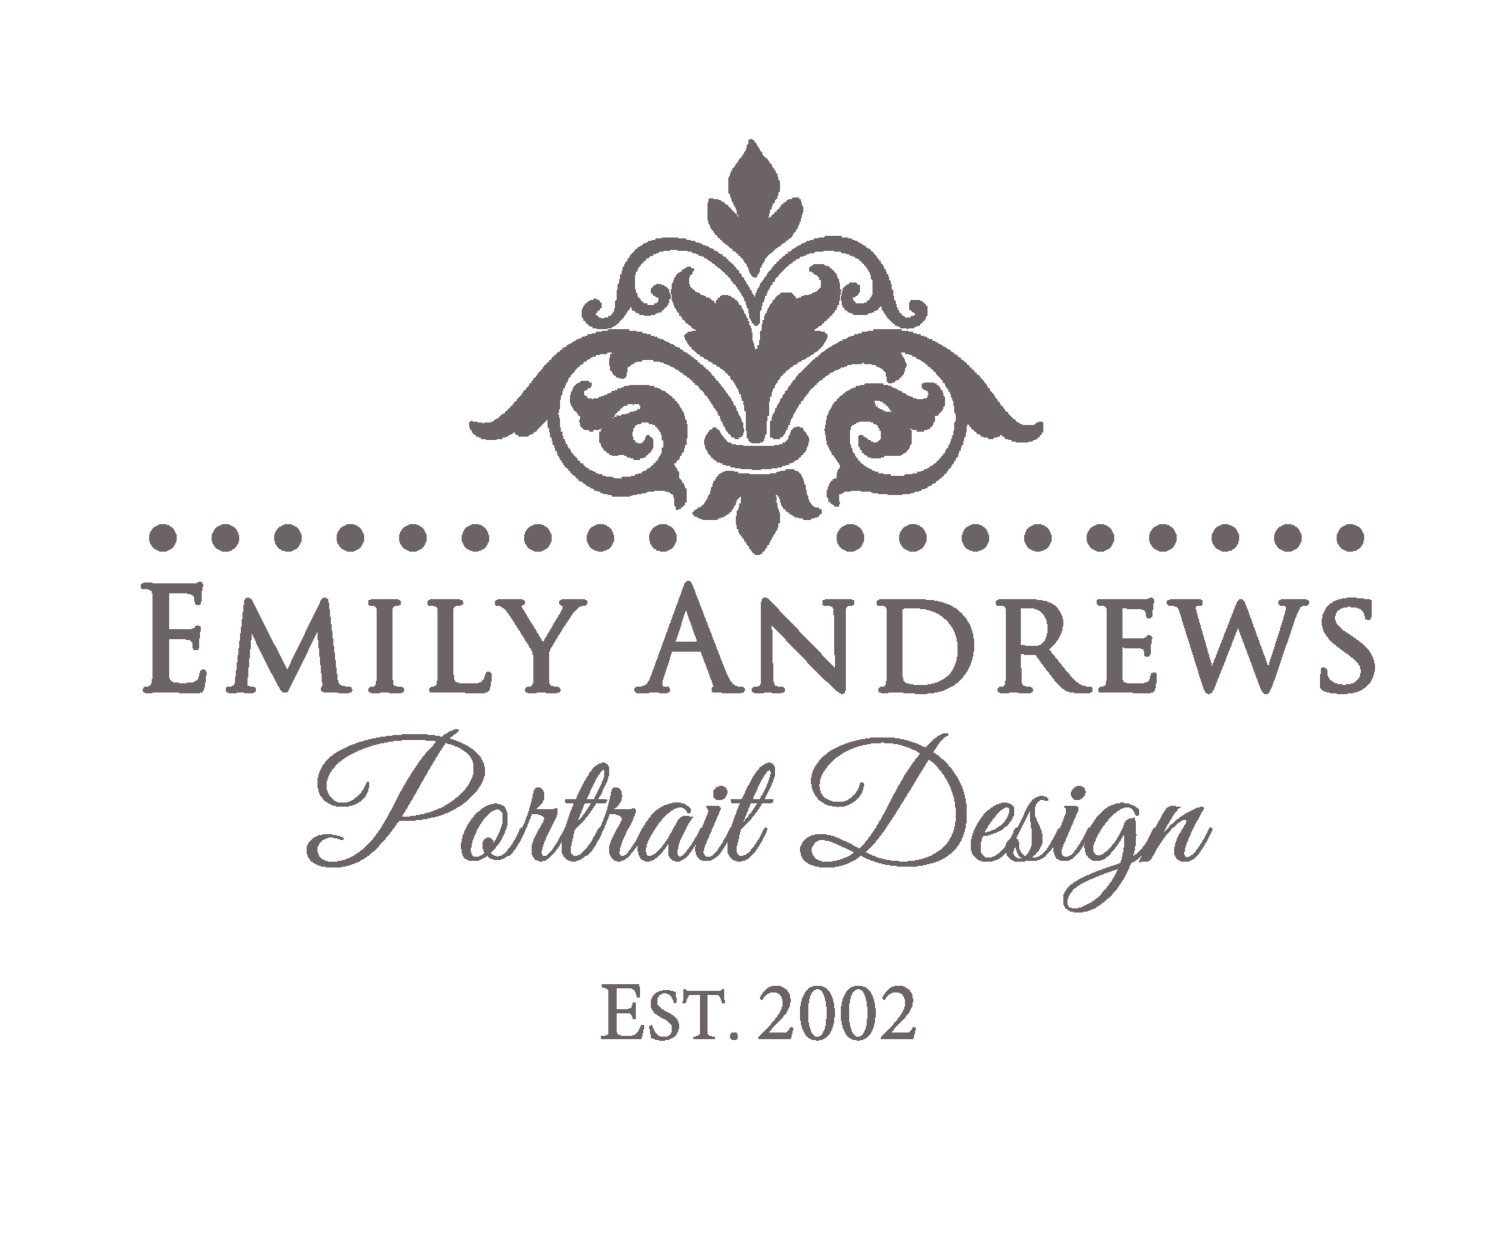 Emily Andrews Portrait Design